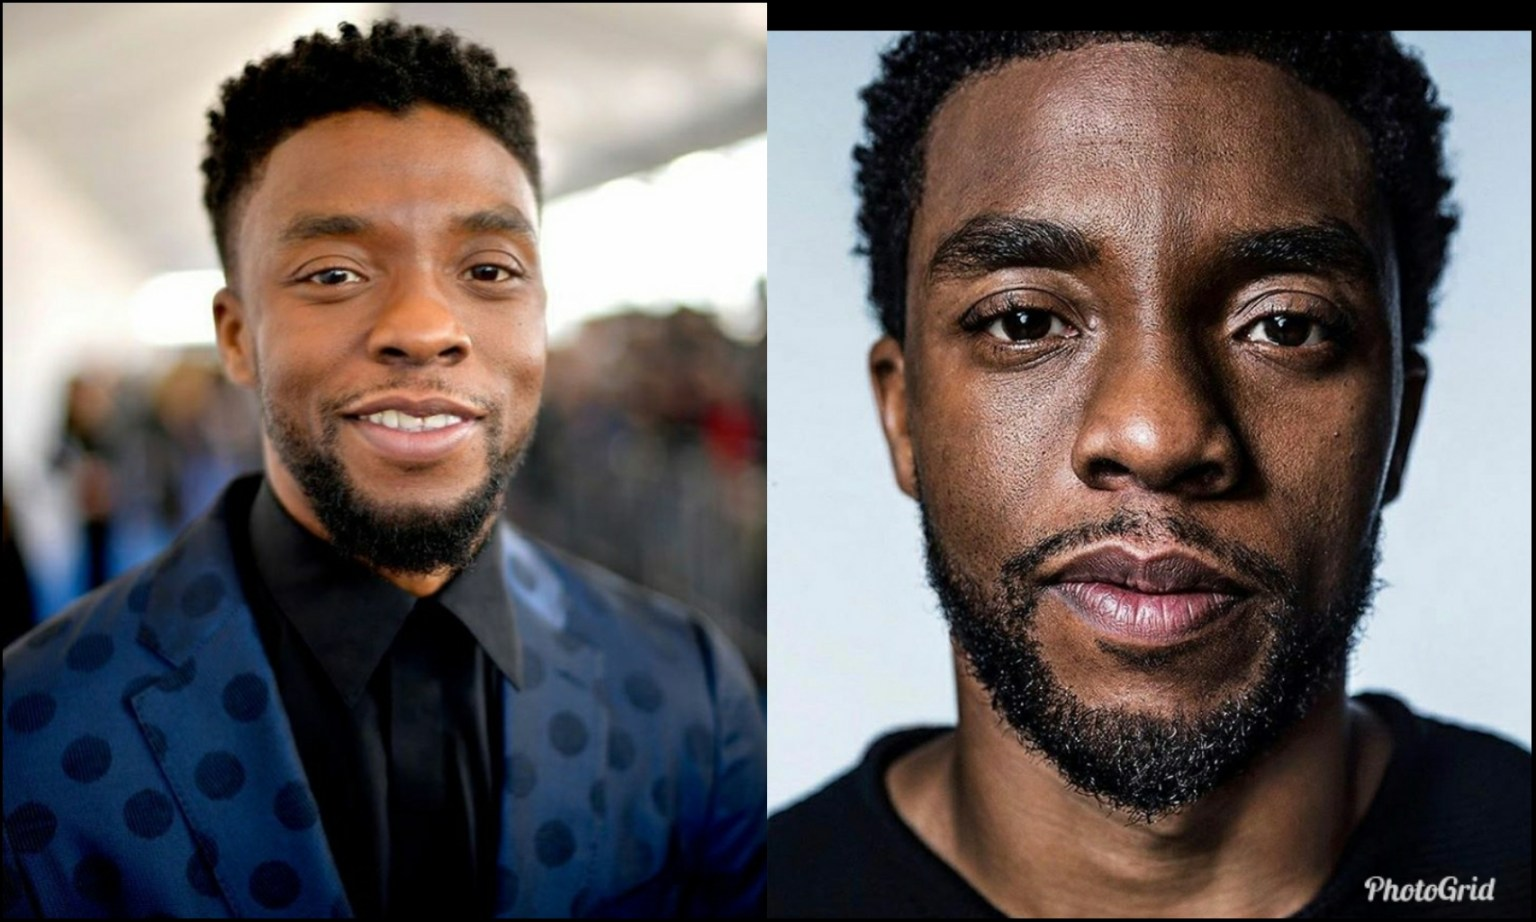 Black Panther's Chadwick Boseman laid to rest